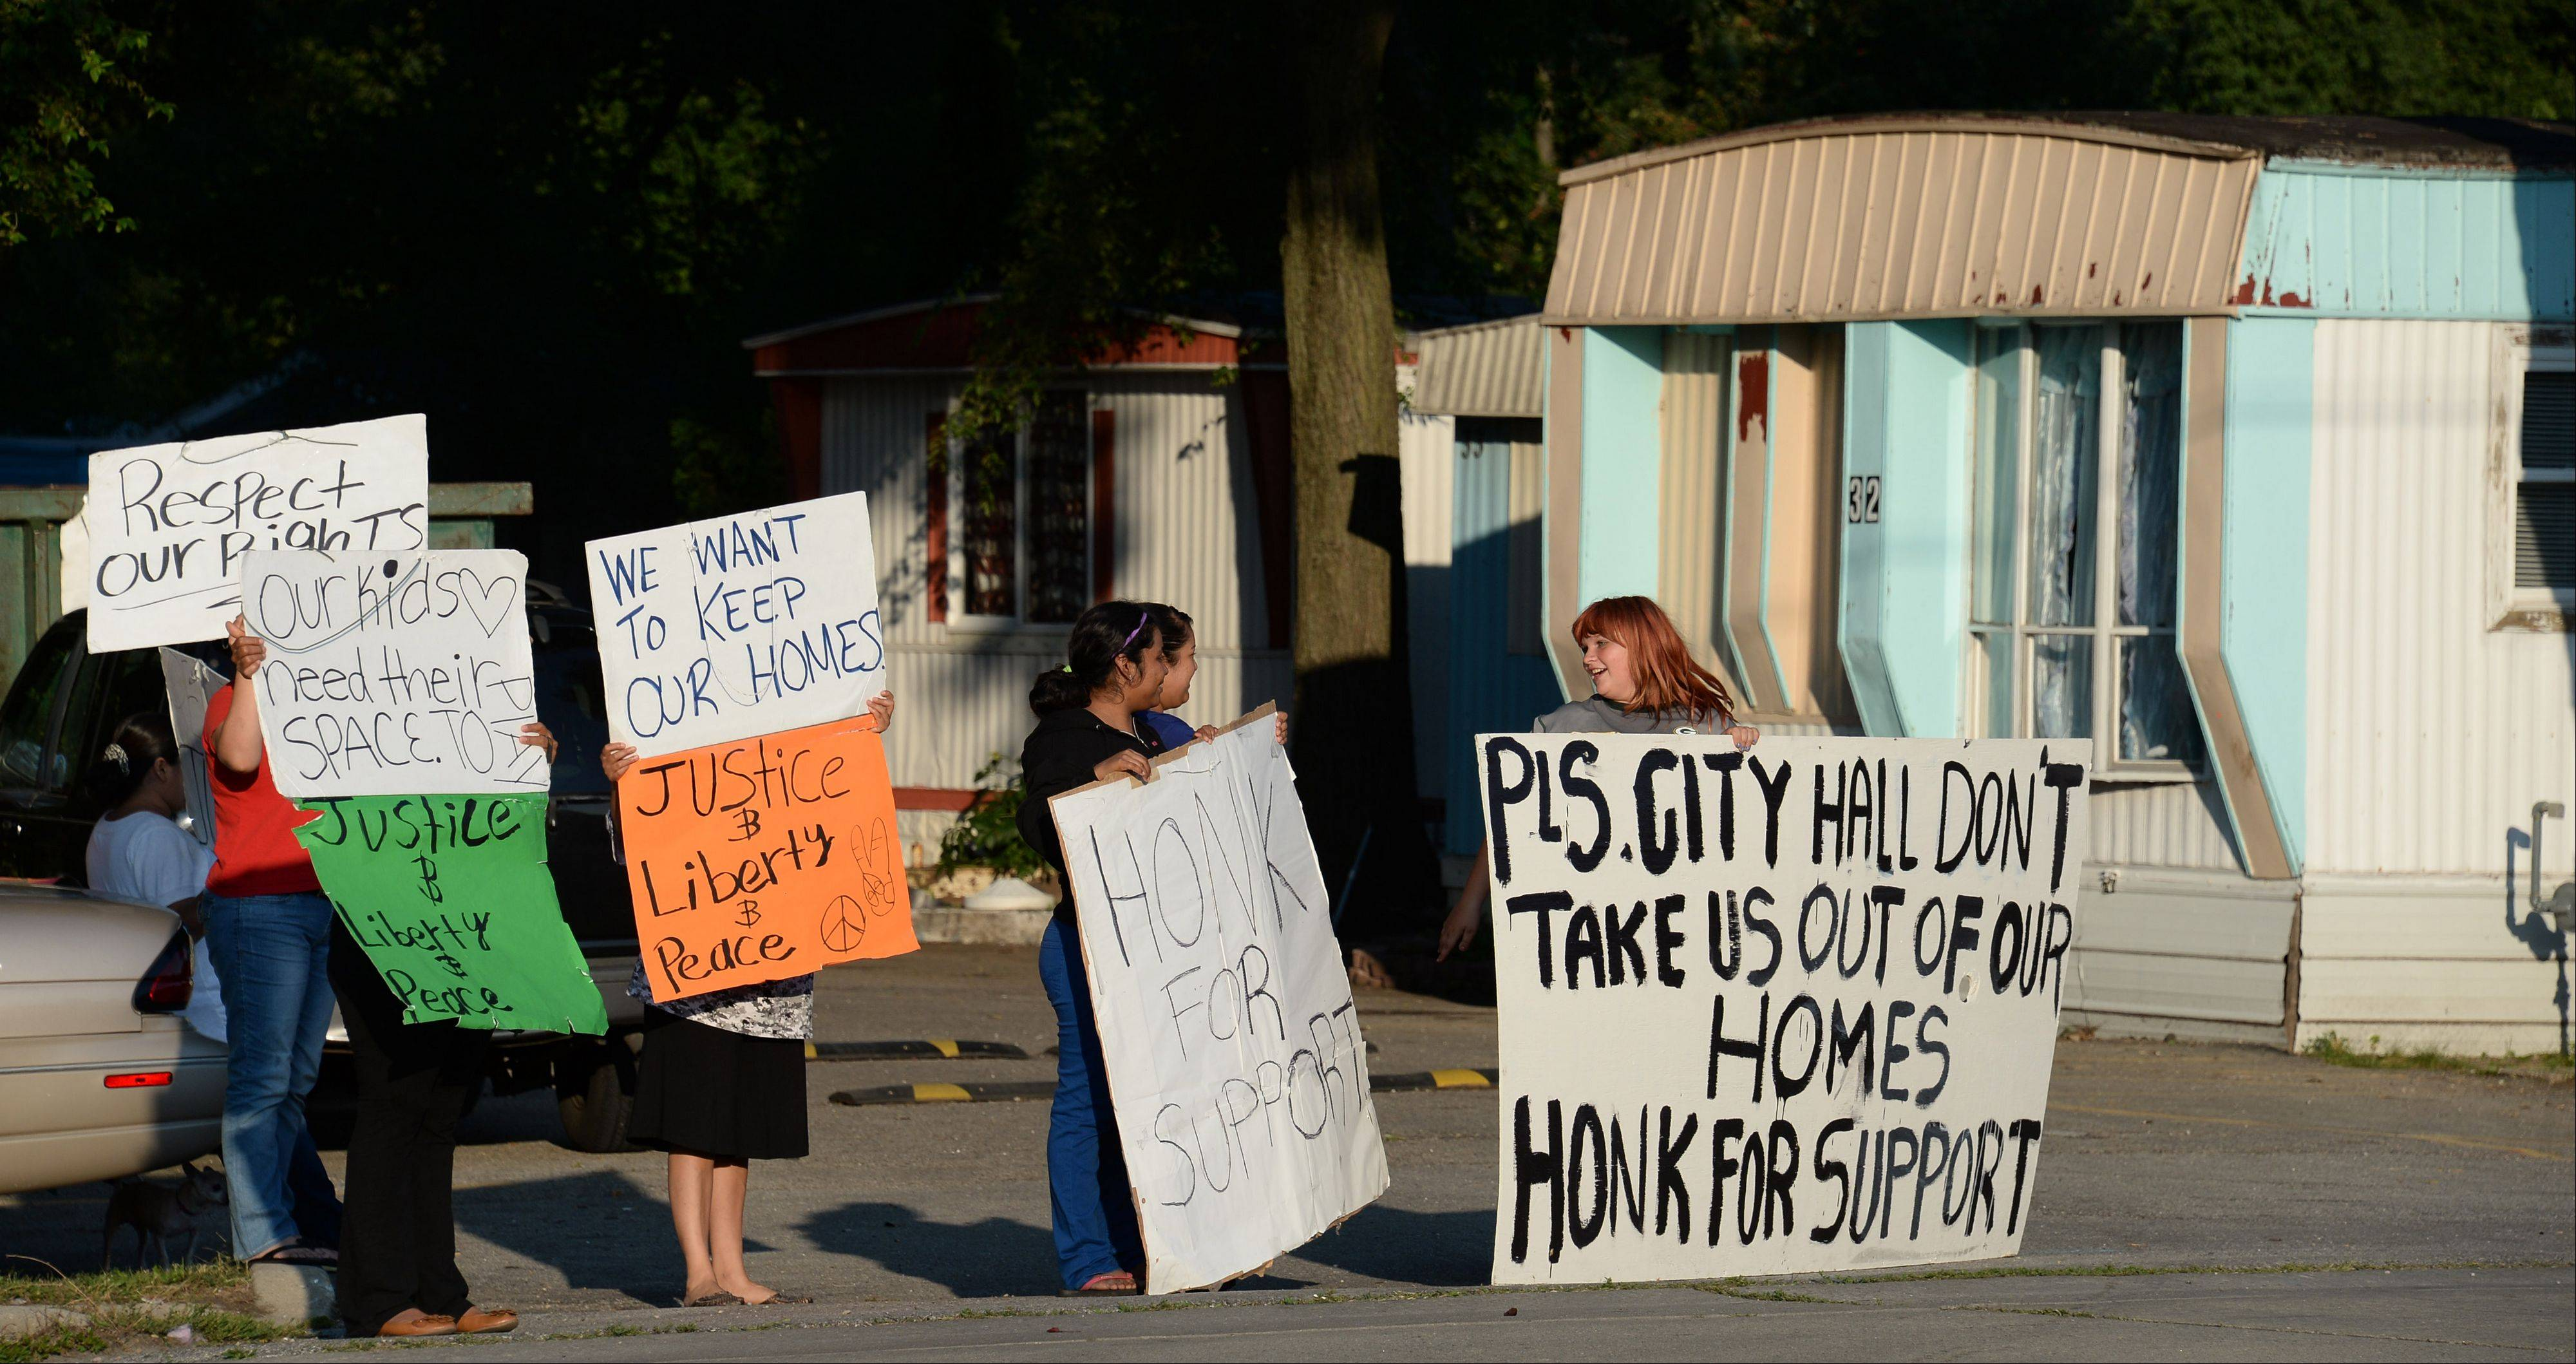 Residents of the Fox Point mobile home community in Wheeling have staged several protests against the village's demands for extensive repairs to homes damaged in April's floods. Residents say the village is targeting them unfairly because the community is predominantly Hispanic.